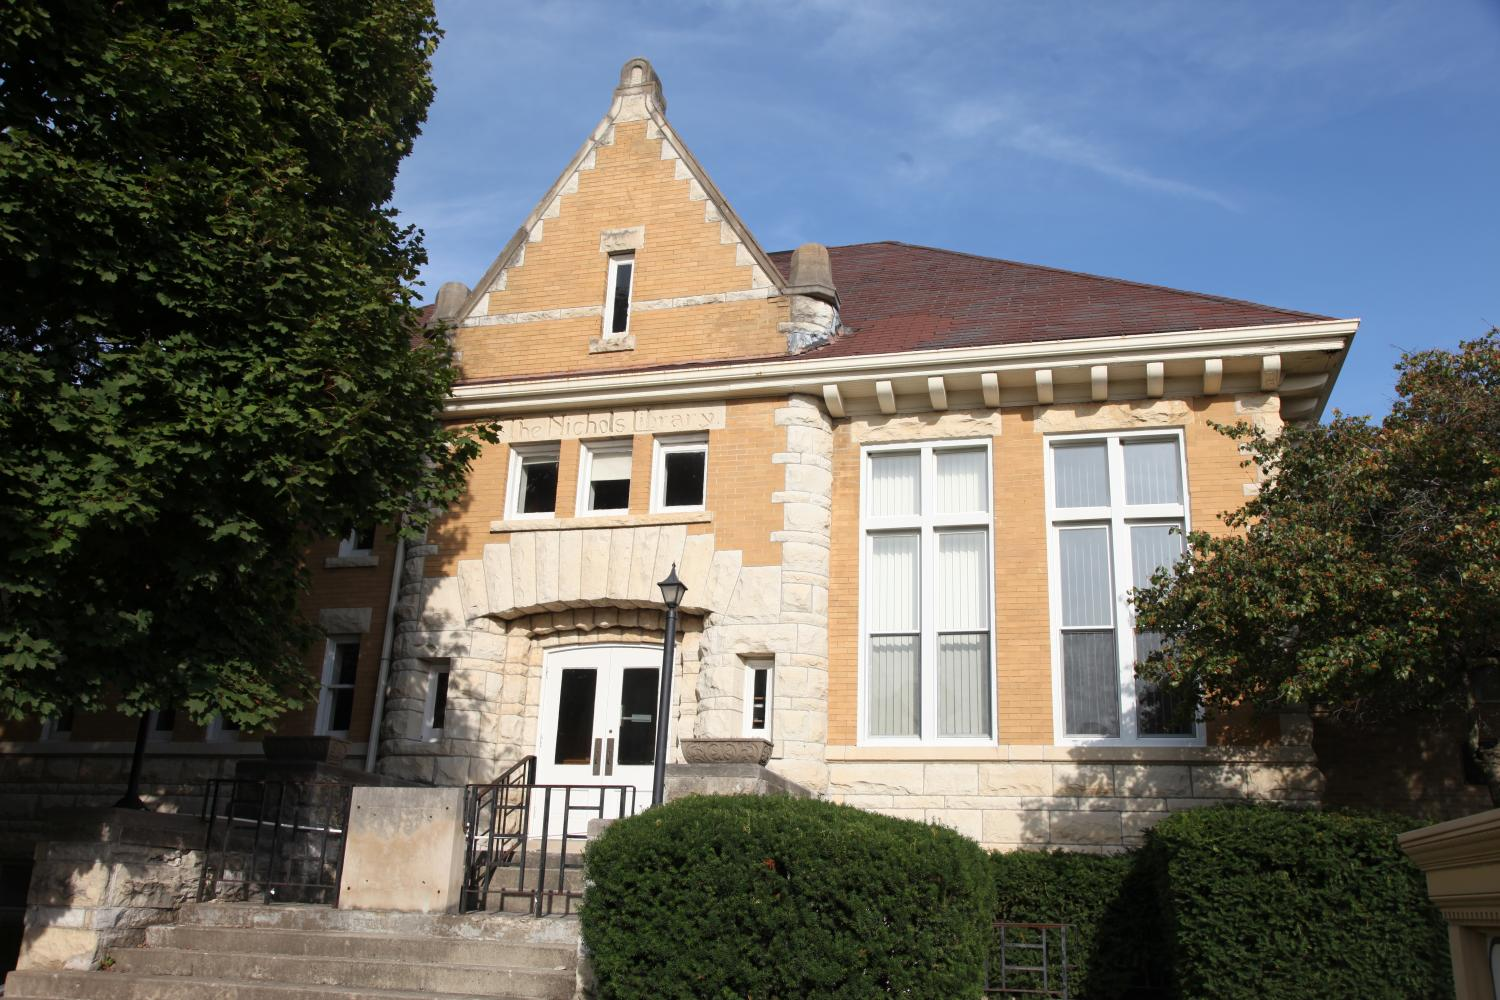 LUCK OF THE LIBRARY: Naperville's city council voted 6-3 to grant monument status to Old Nichols Library. This protects the building, located at 110 S. Washington St., from being altered or demolished.